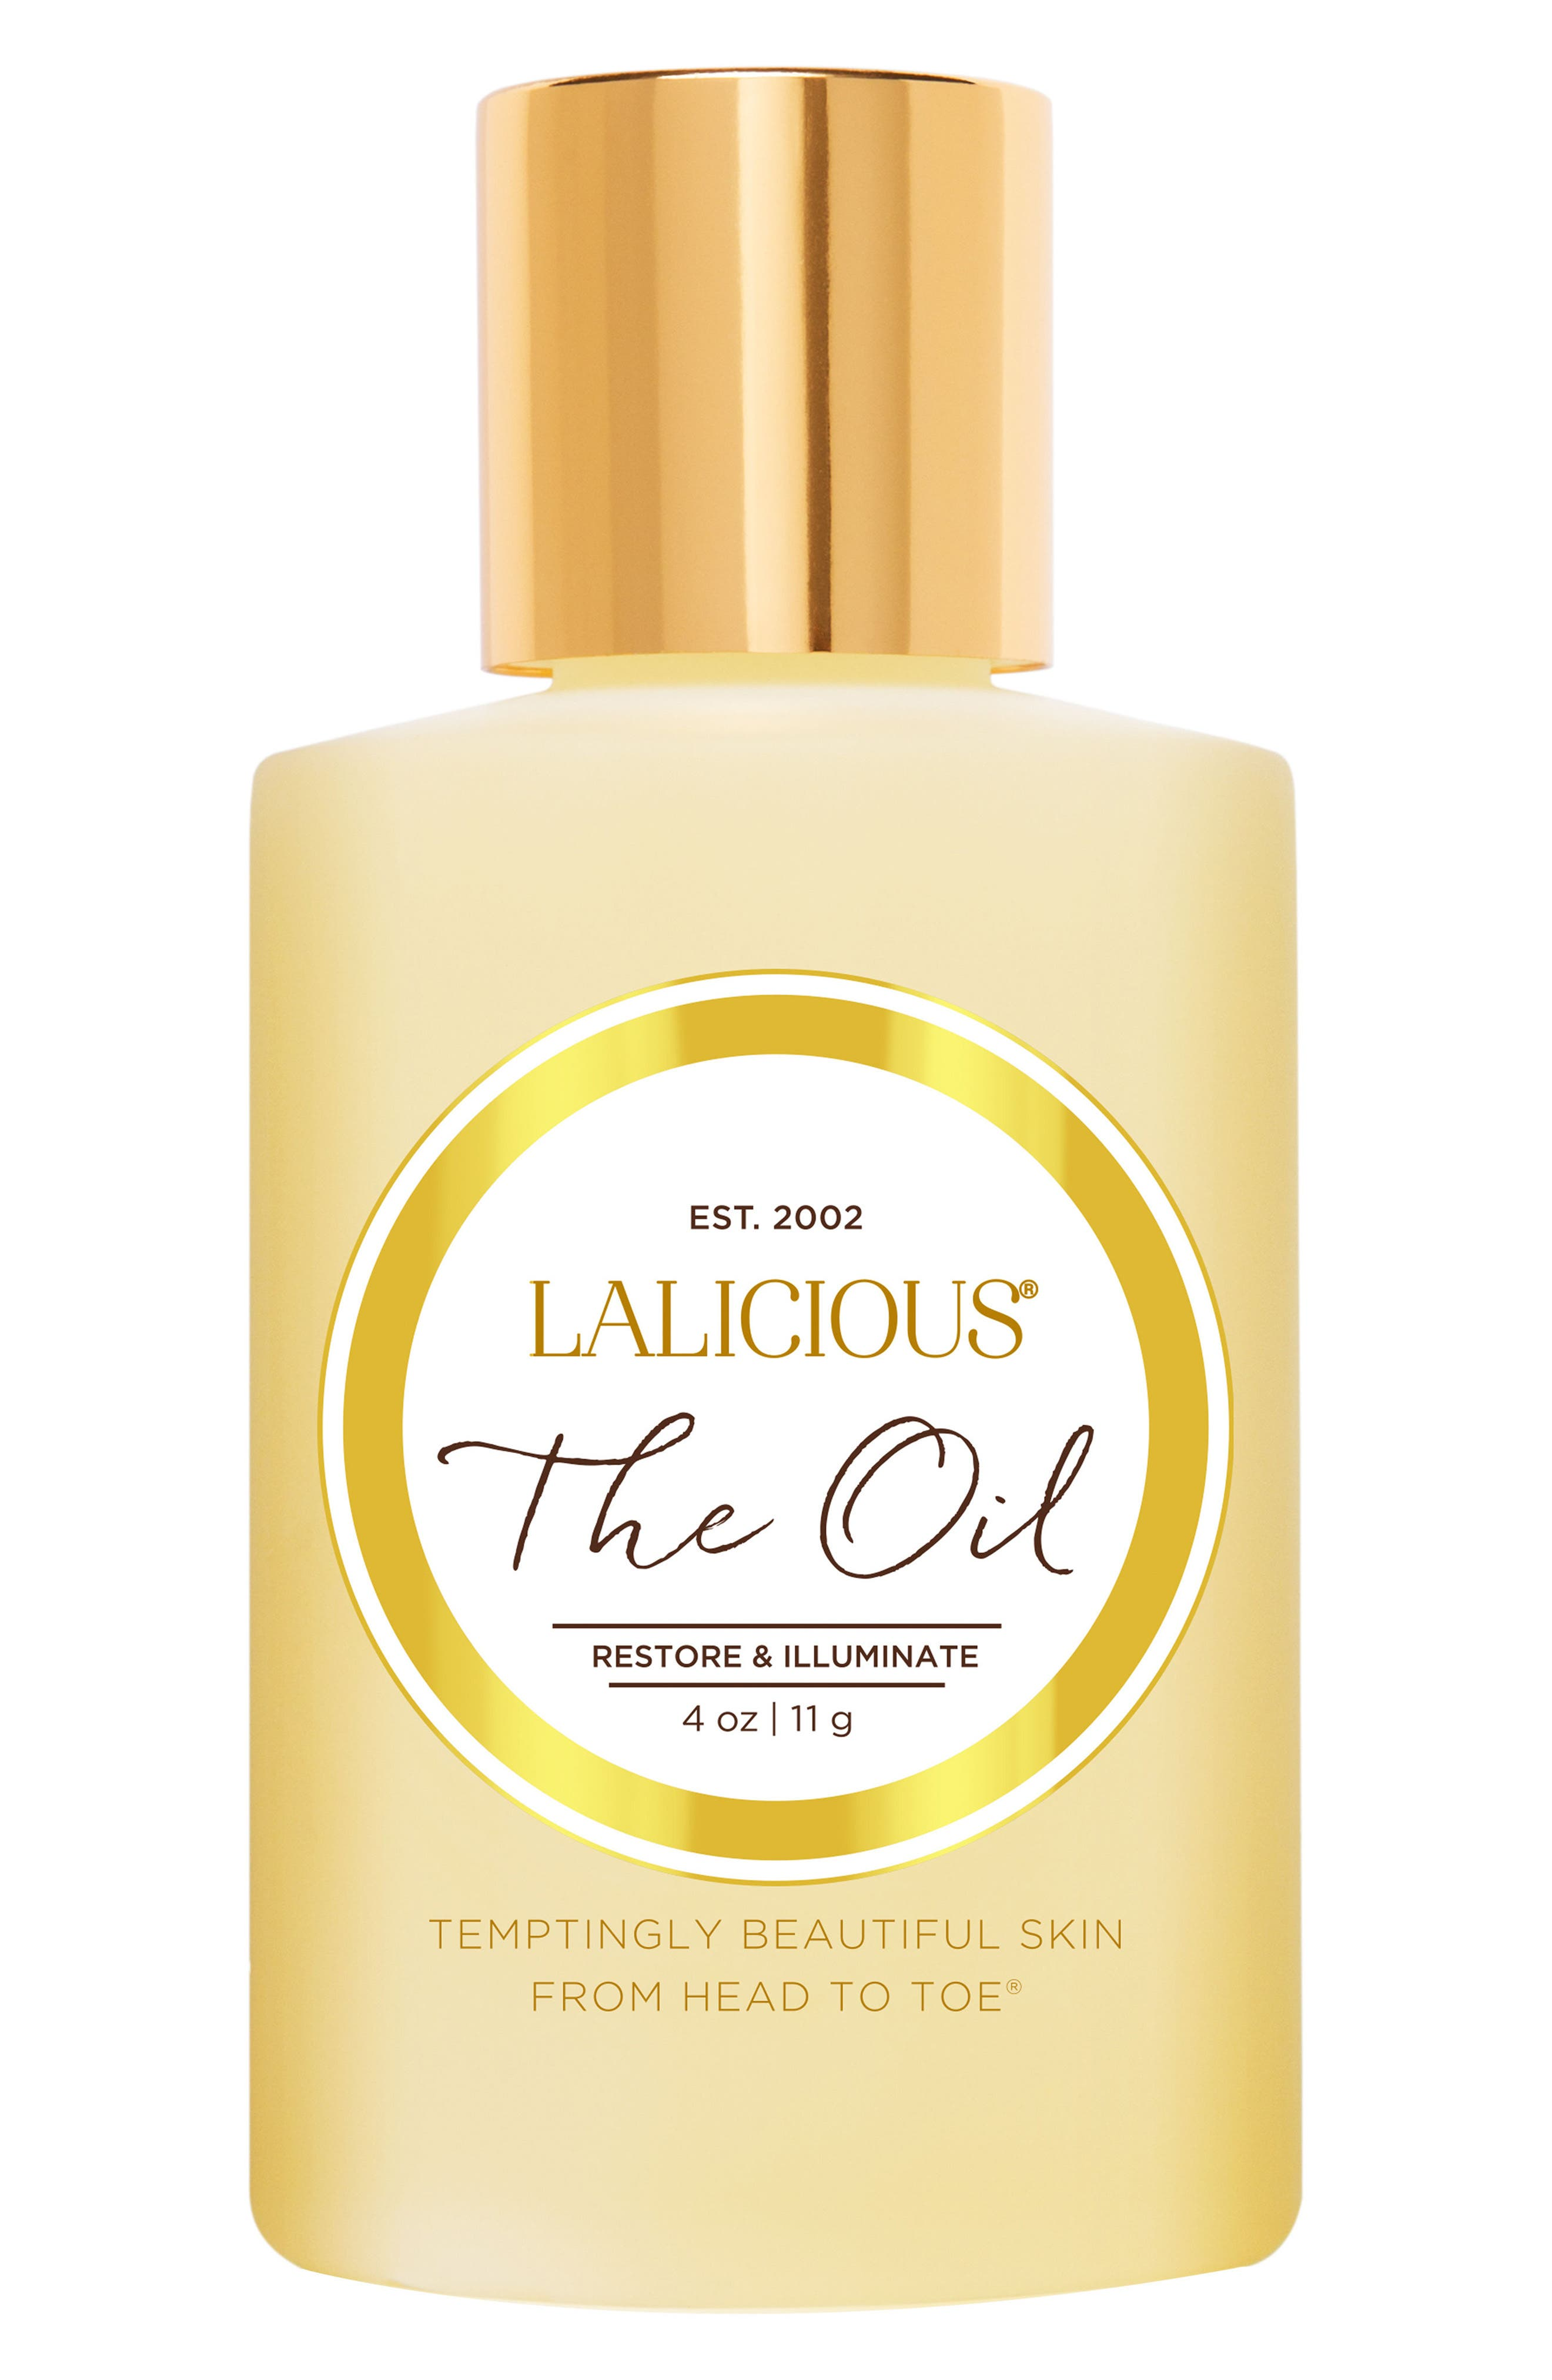 LALICIOUS The Oil